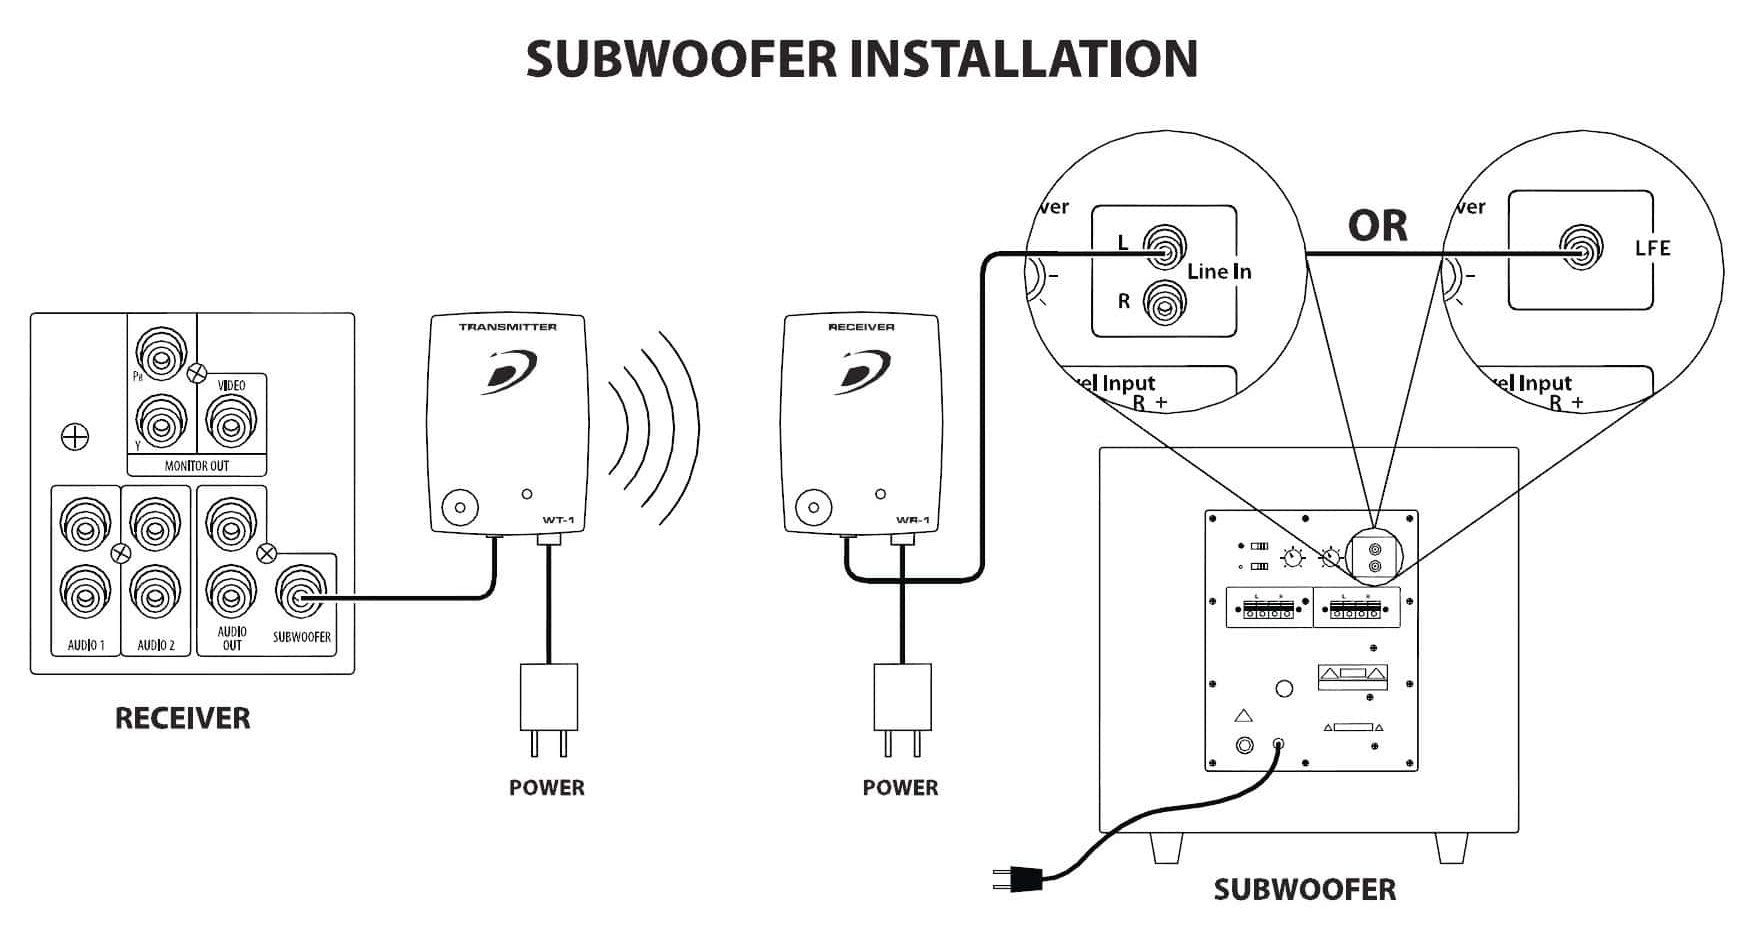 subwoofer installation